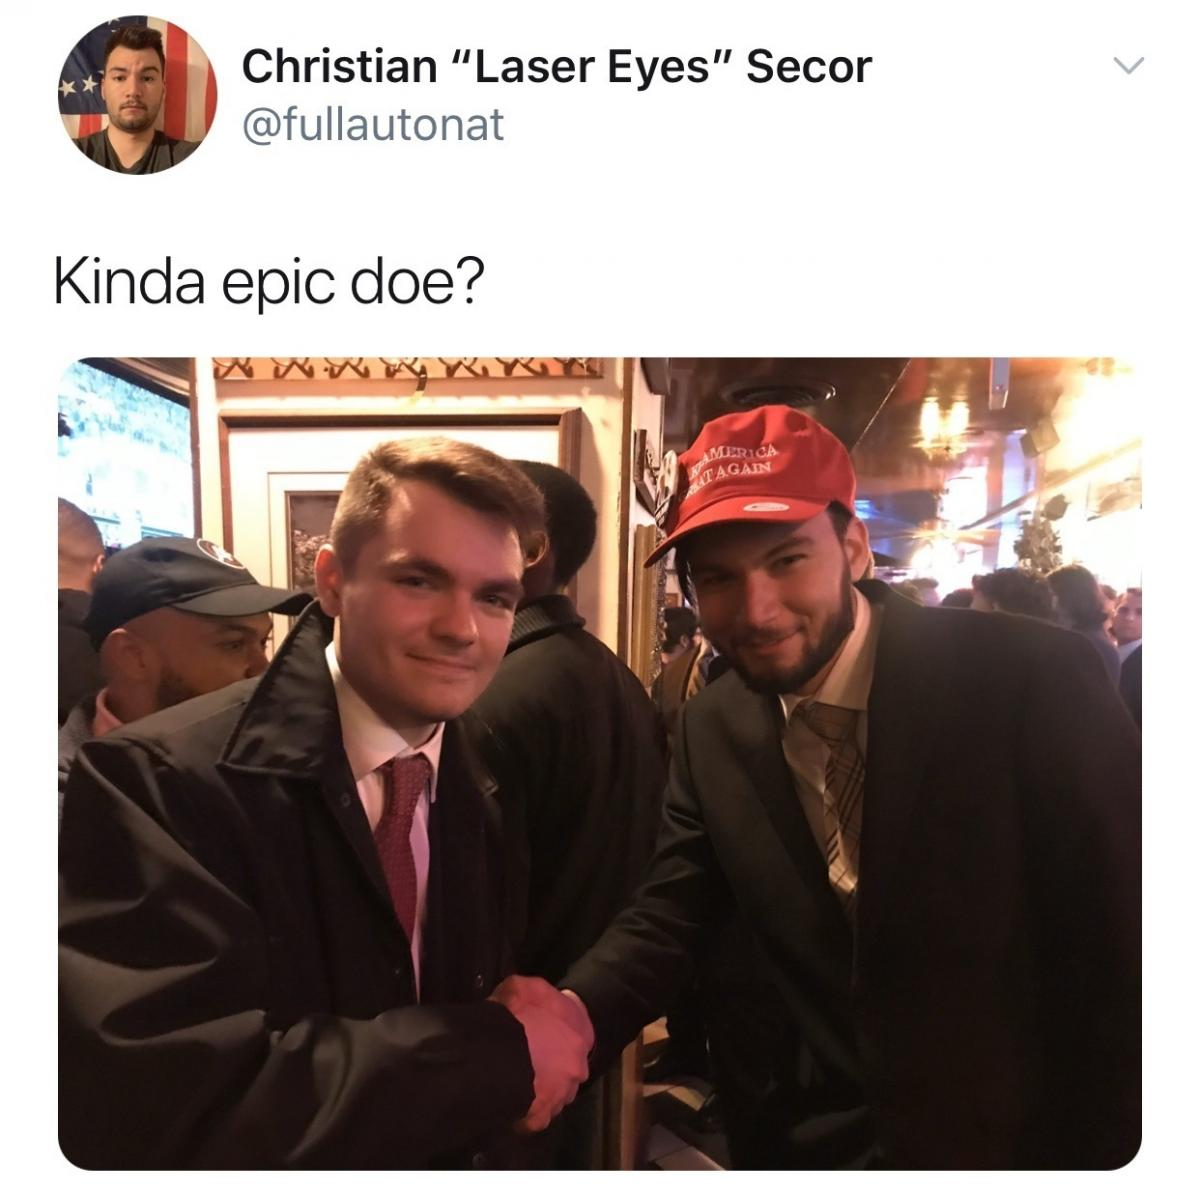 Nick Fuentes (left) shakes hands with Christian Secor (right) in a photo cited by the Department of Justice in its criminal case against Secor. Fuentes is a far-right extremist podcaster who has repeatedly engaged in Holocaust denial. A student activist a